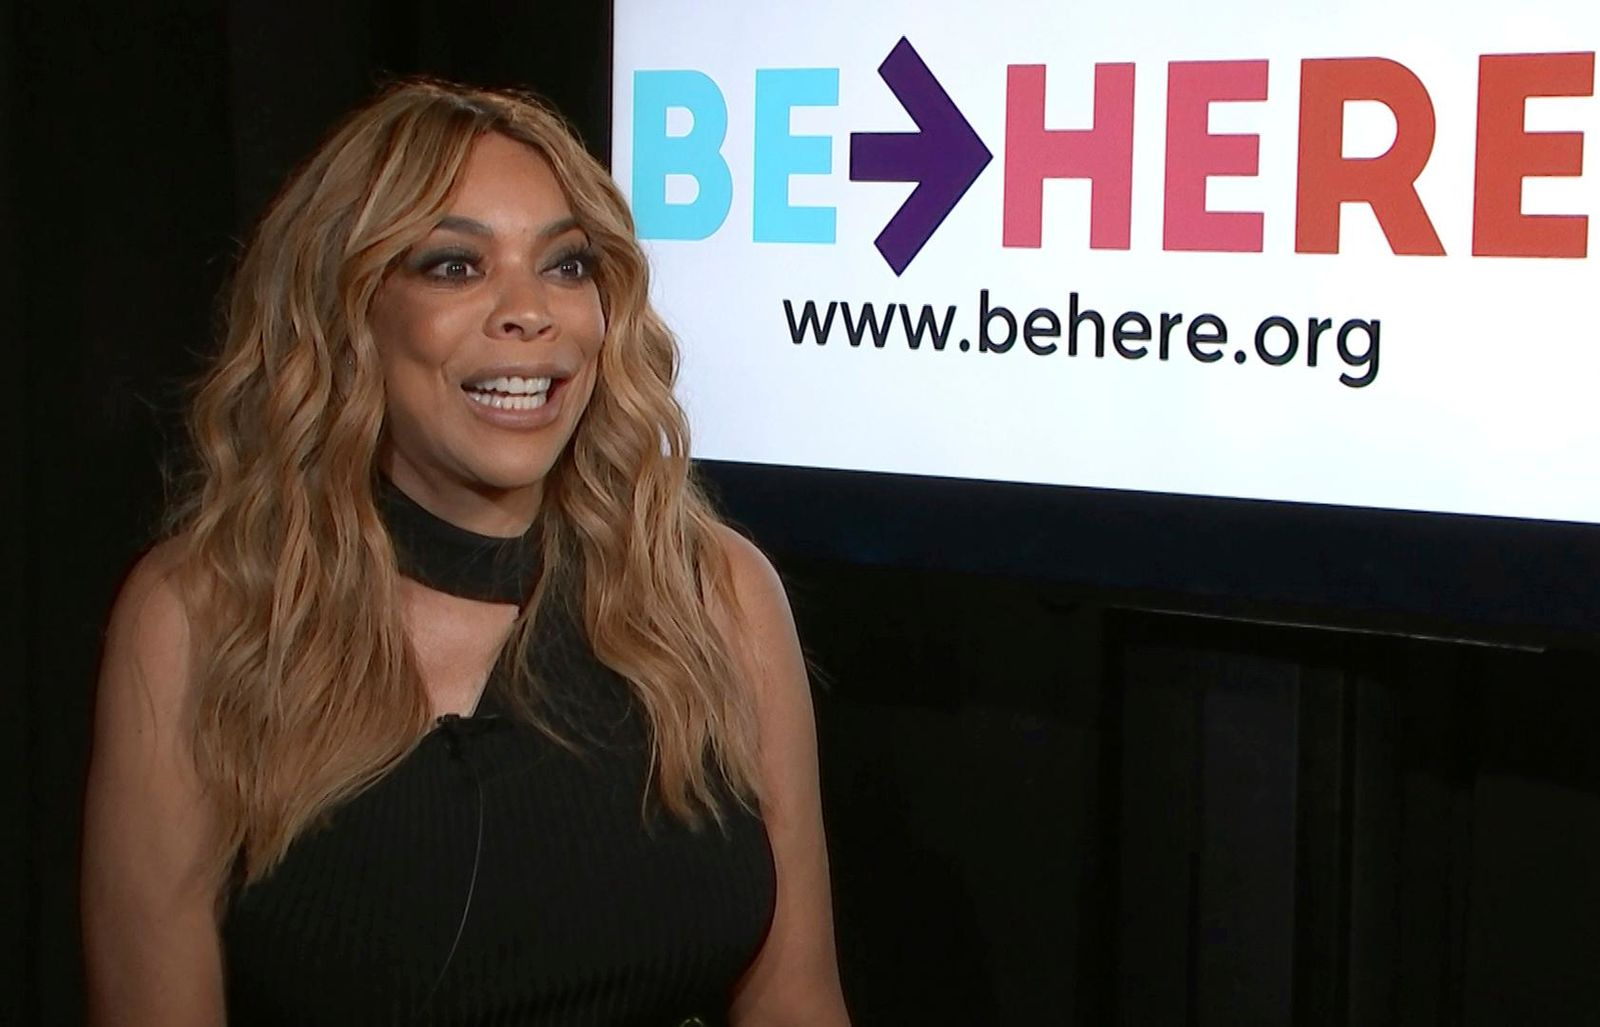 This Sept. 7, 2018 file image taken from video shows talk show host Wendy Williams during an interview in New York. Williams' family says she is taking an extended break from her TV talk show to deal with health issues. In a statement Friday,  Jan. 18, 2019, the family said that Williams has suffered complications from the Graves' disease in the past few days. (AP Photo, File)